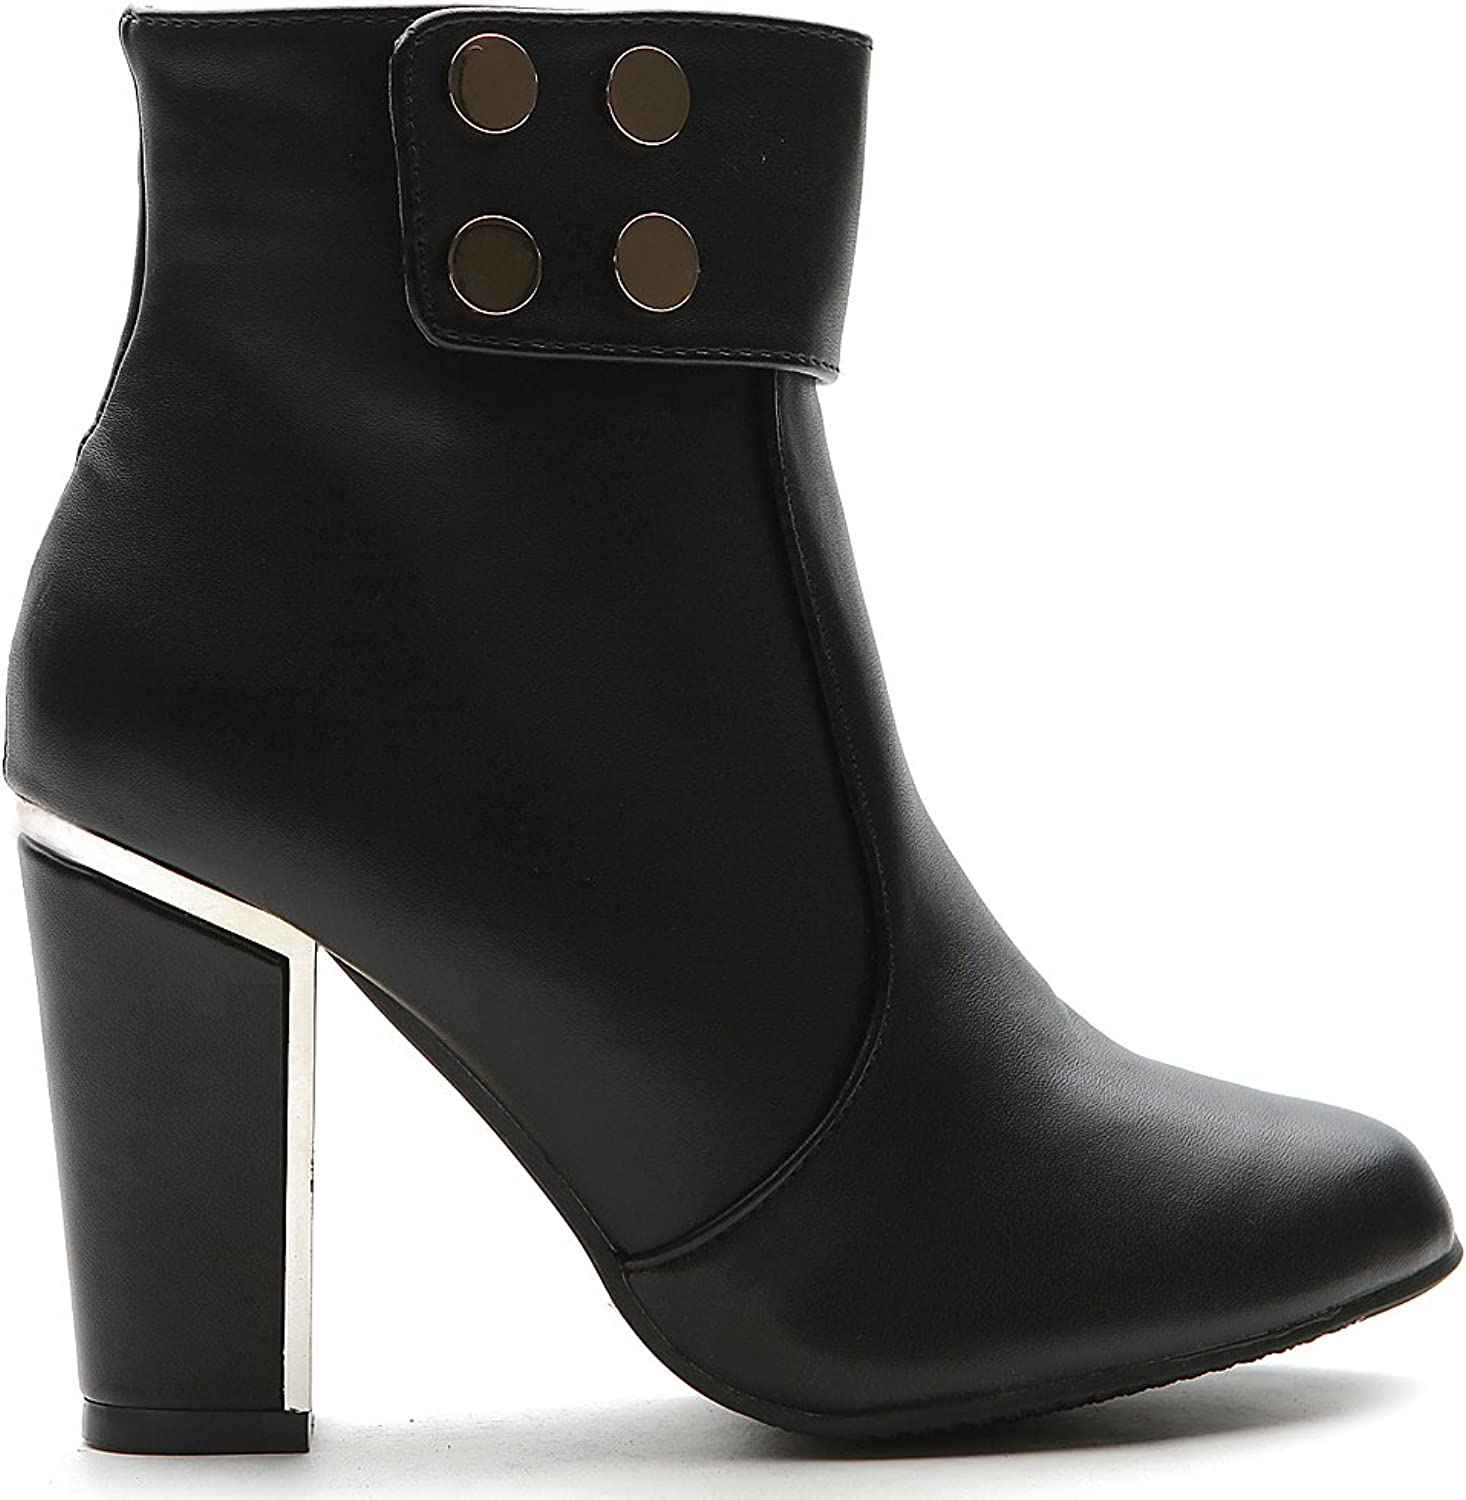 Ollio Women's shoes Button Accent Side Zip Closure High Heels Ankle Boot